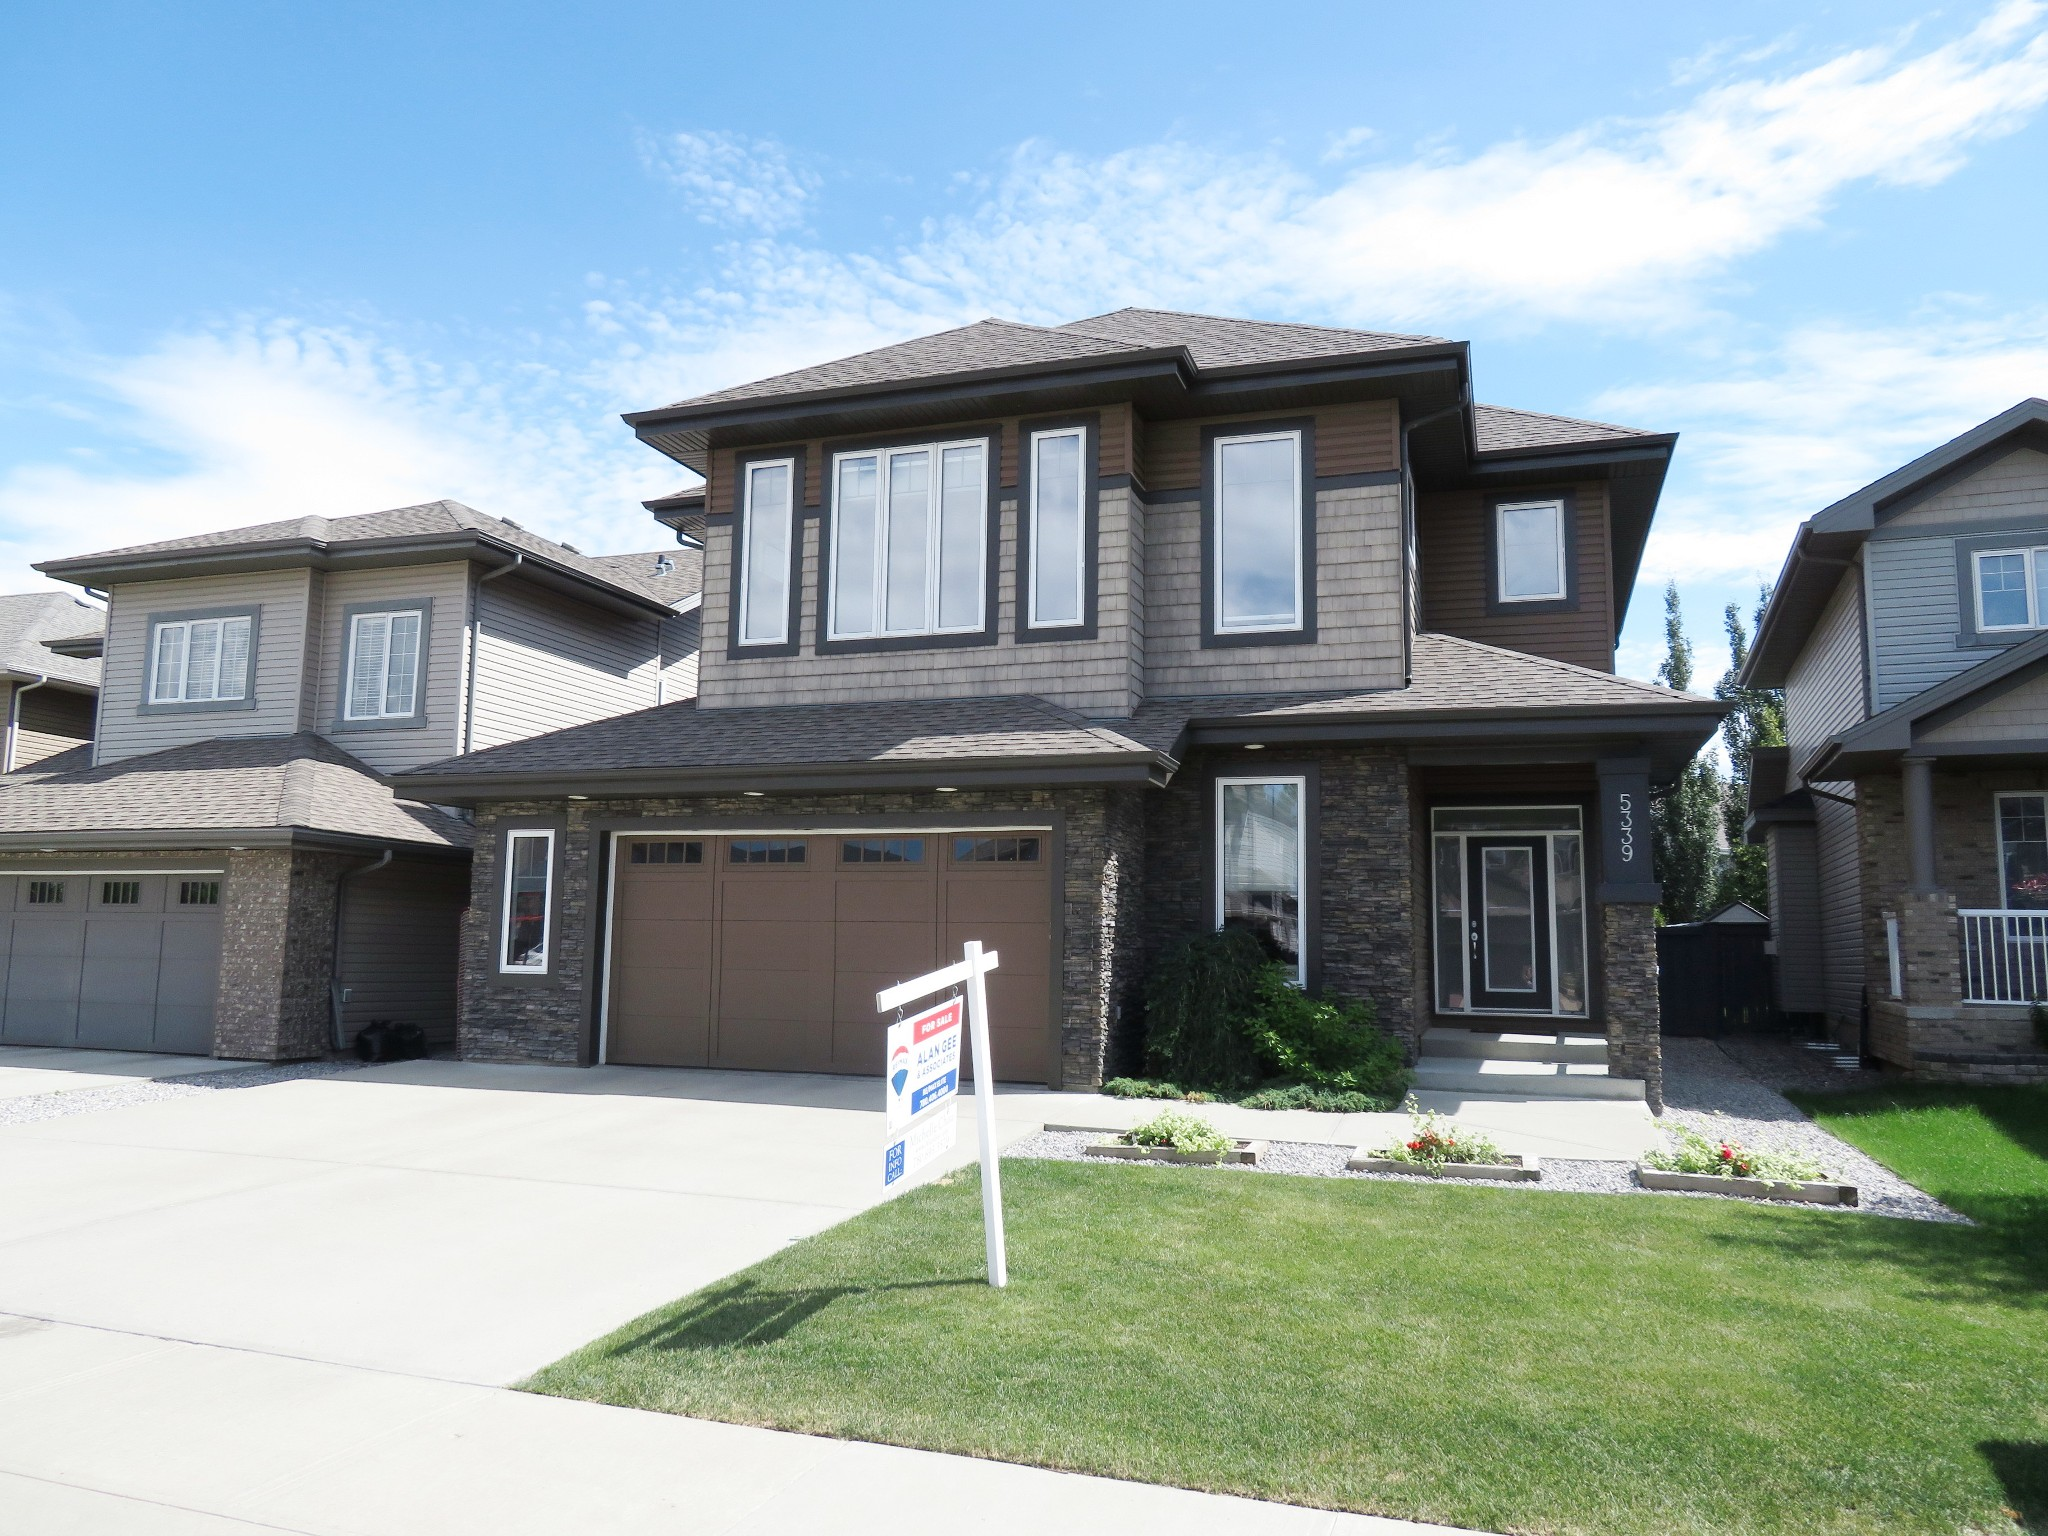 Main Photo: 5339 Mullen Bend in EDMONTON: House for sale